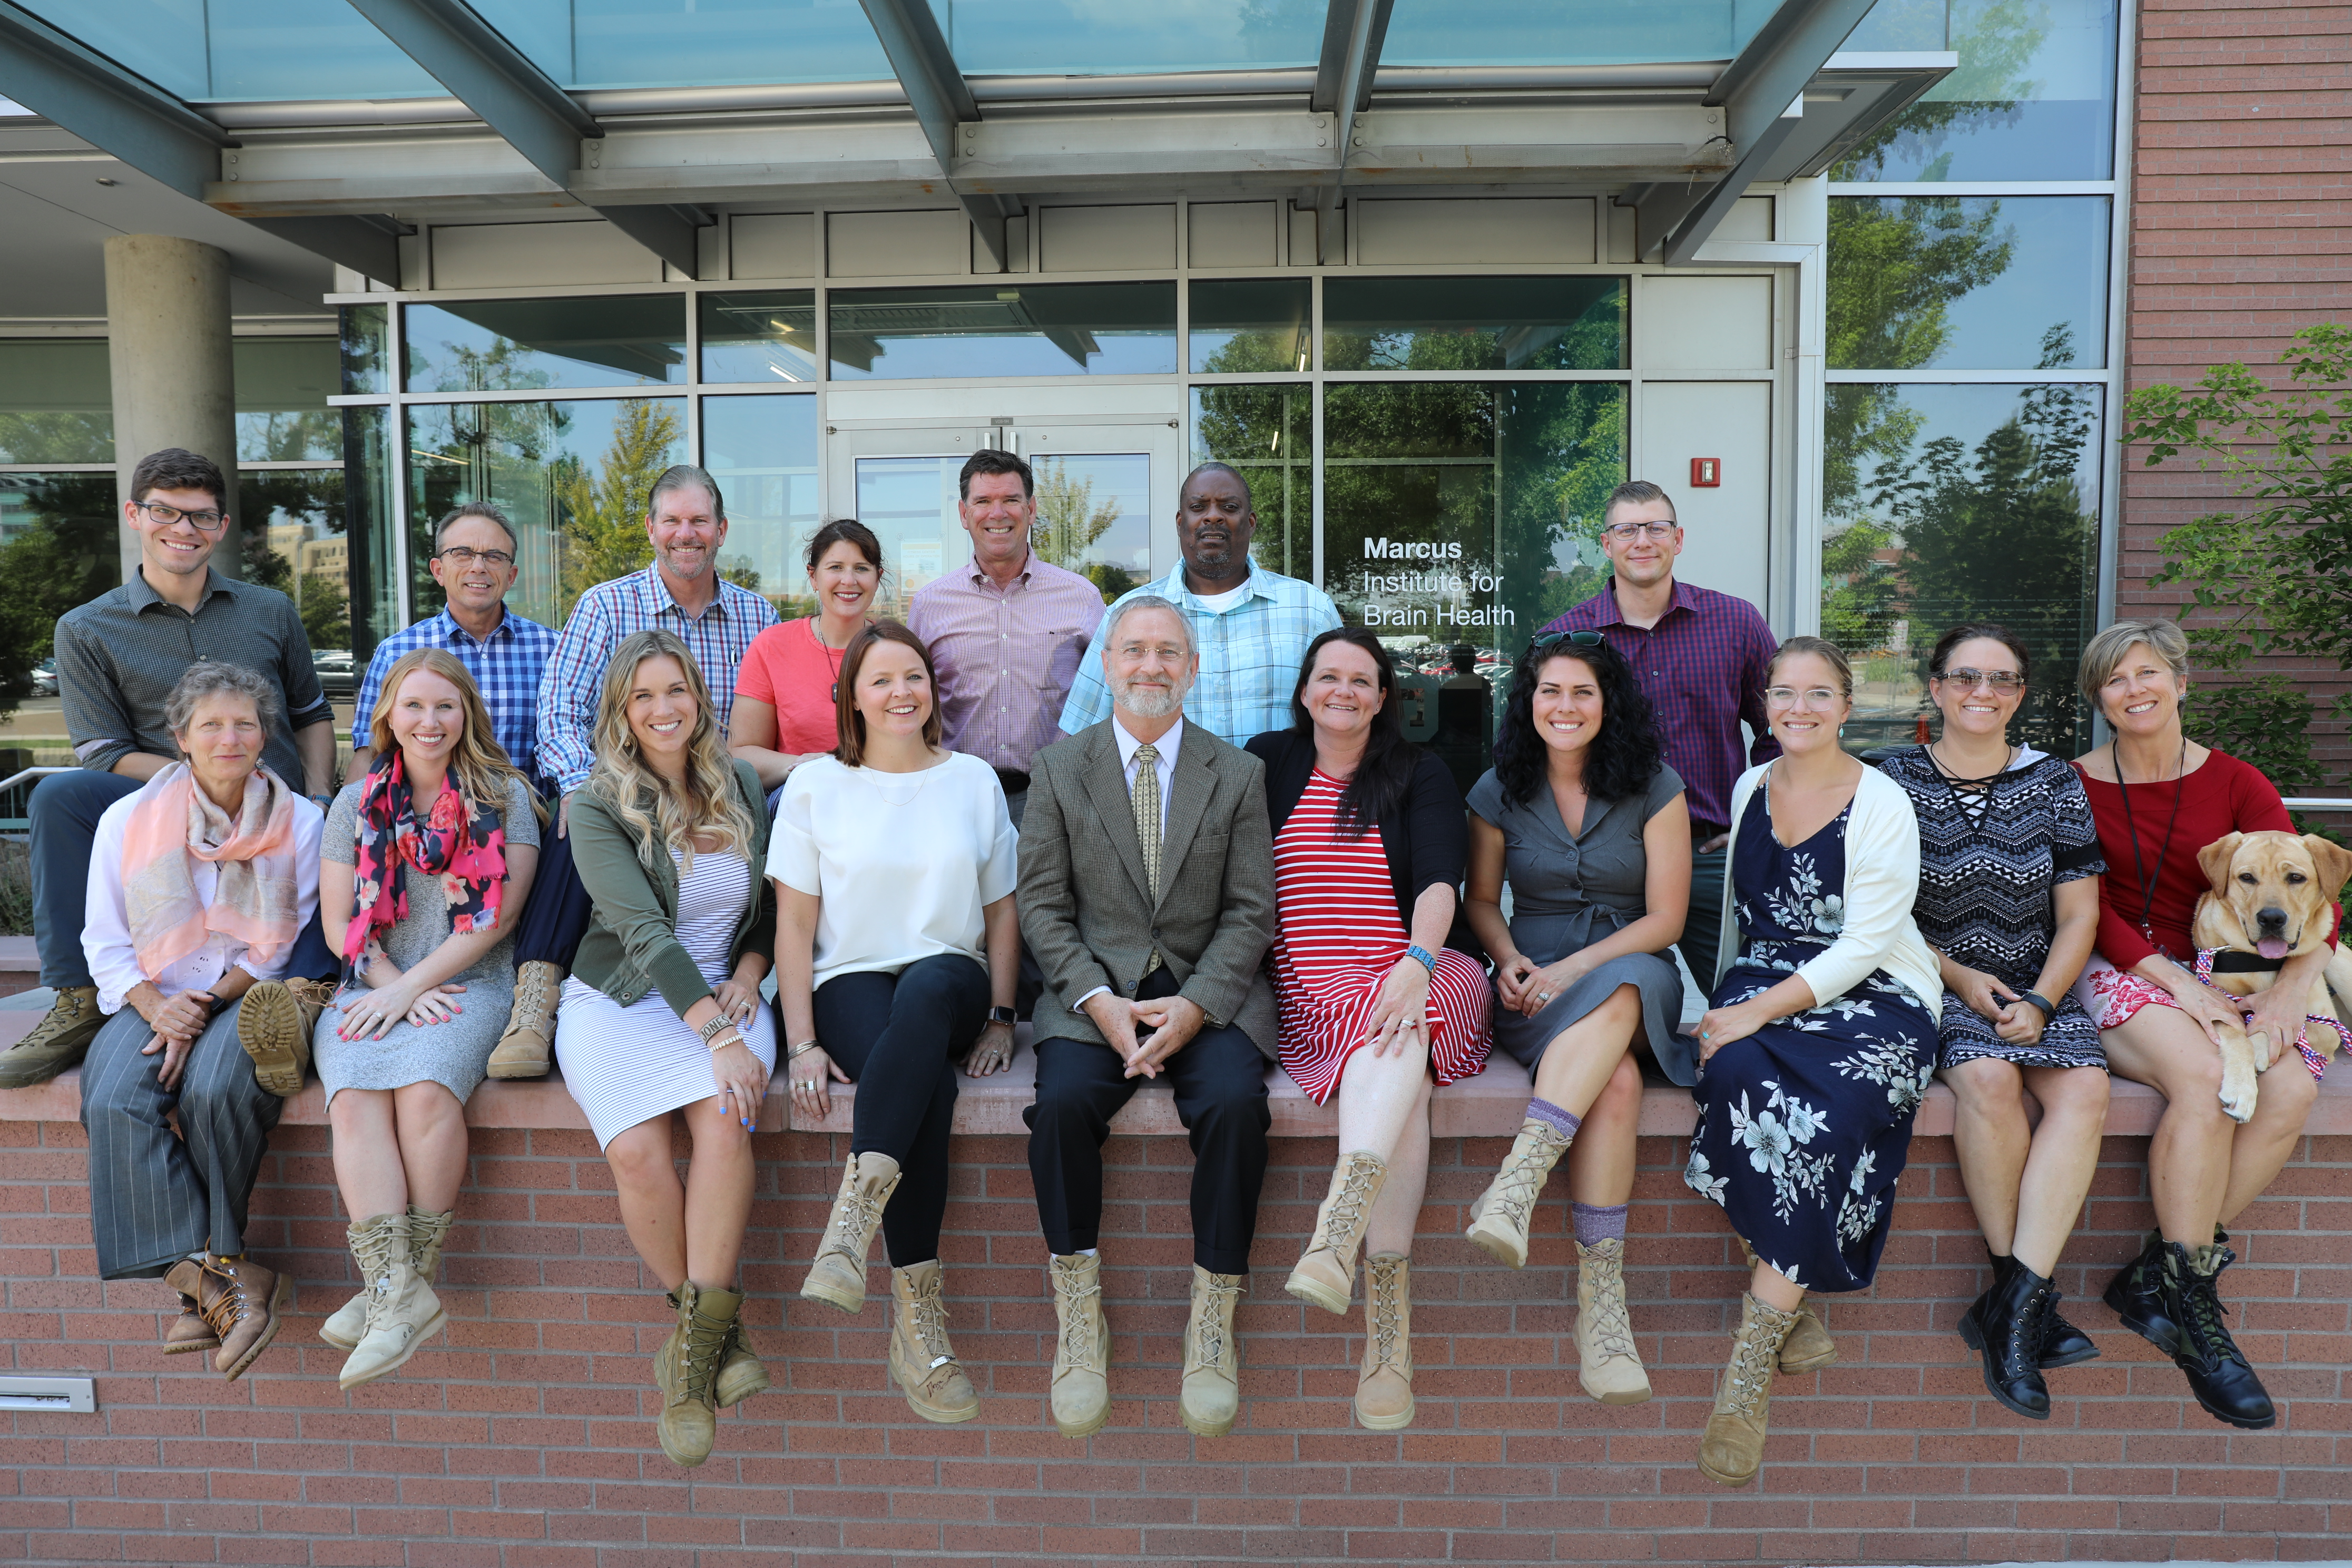 Marcus Institute for Brain Health - traumatic brain injury research and treatment experts boot shoot